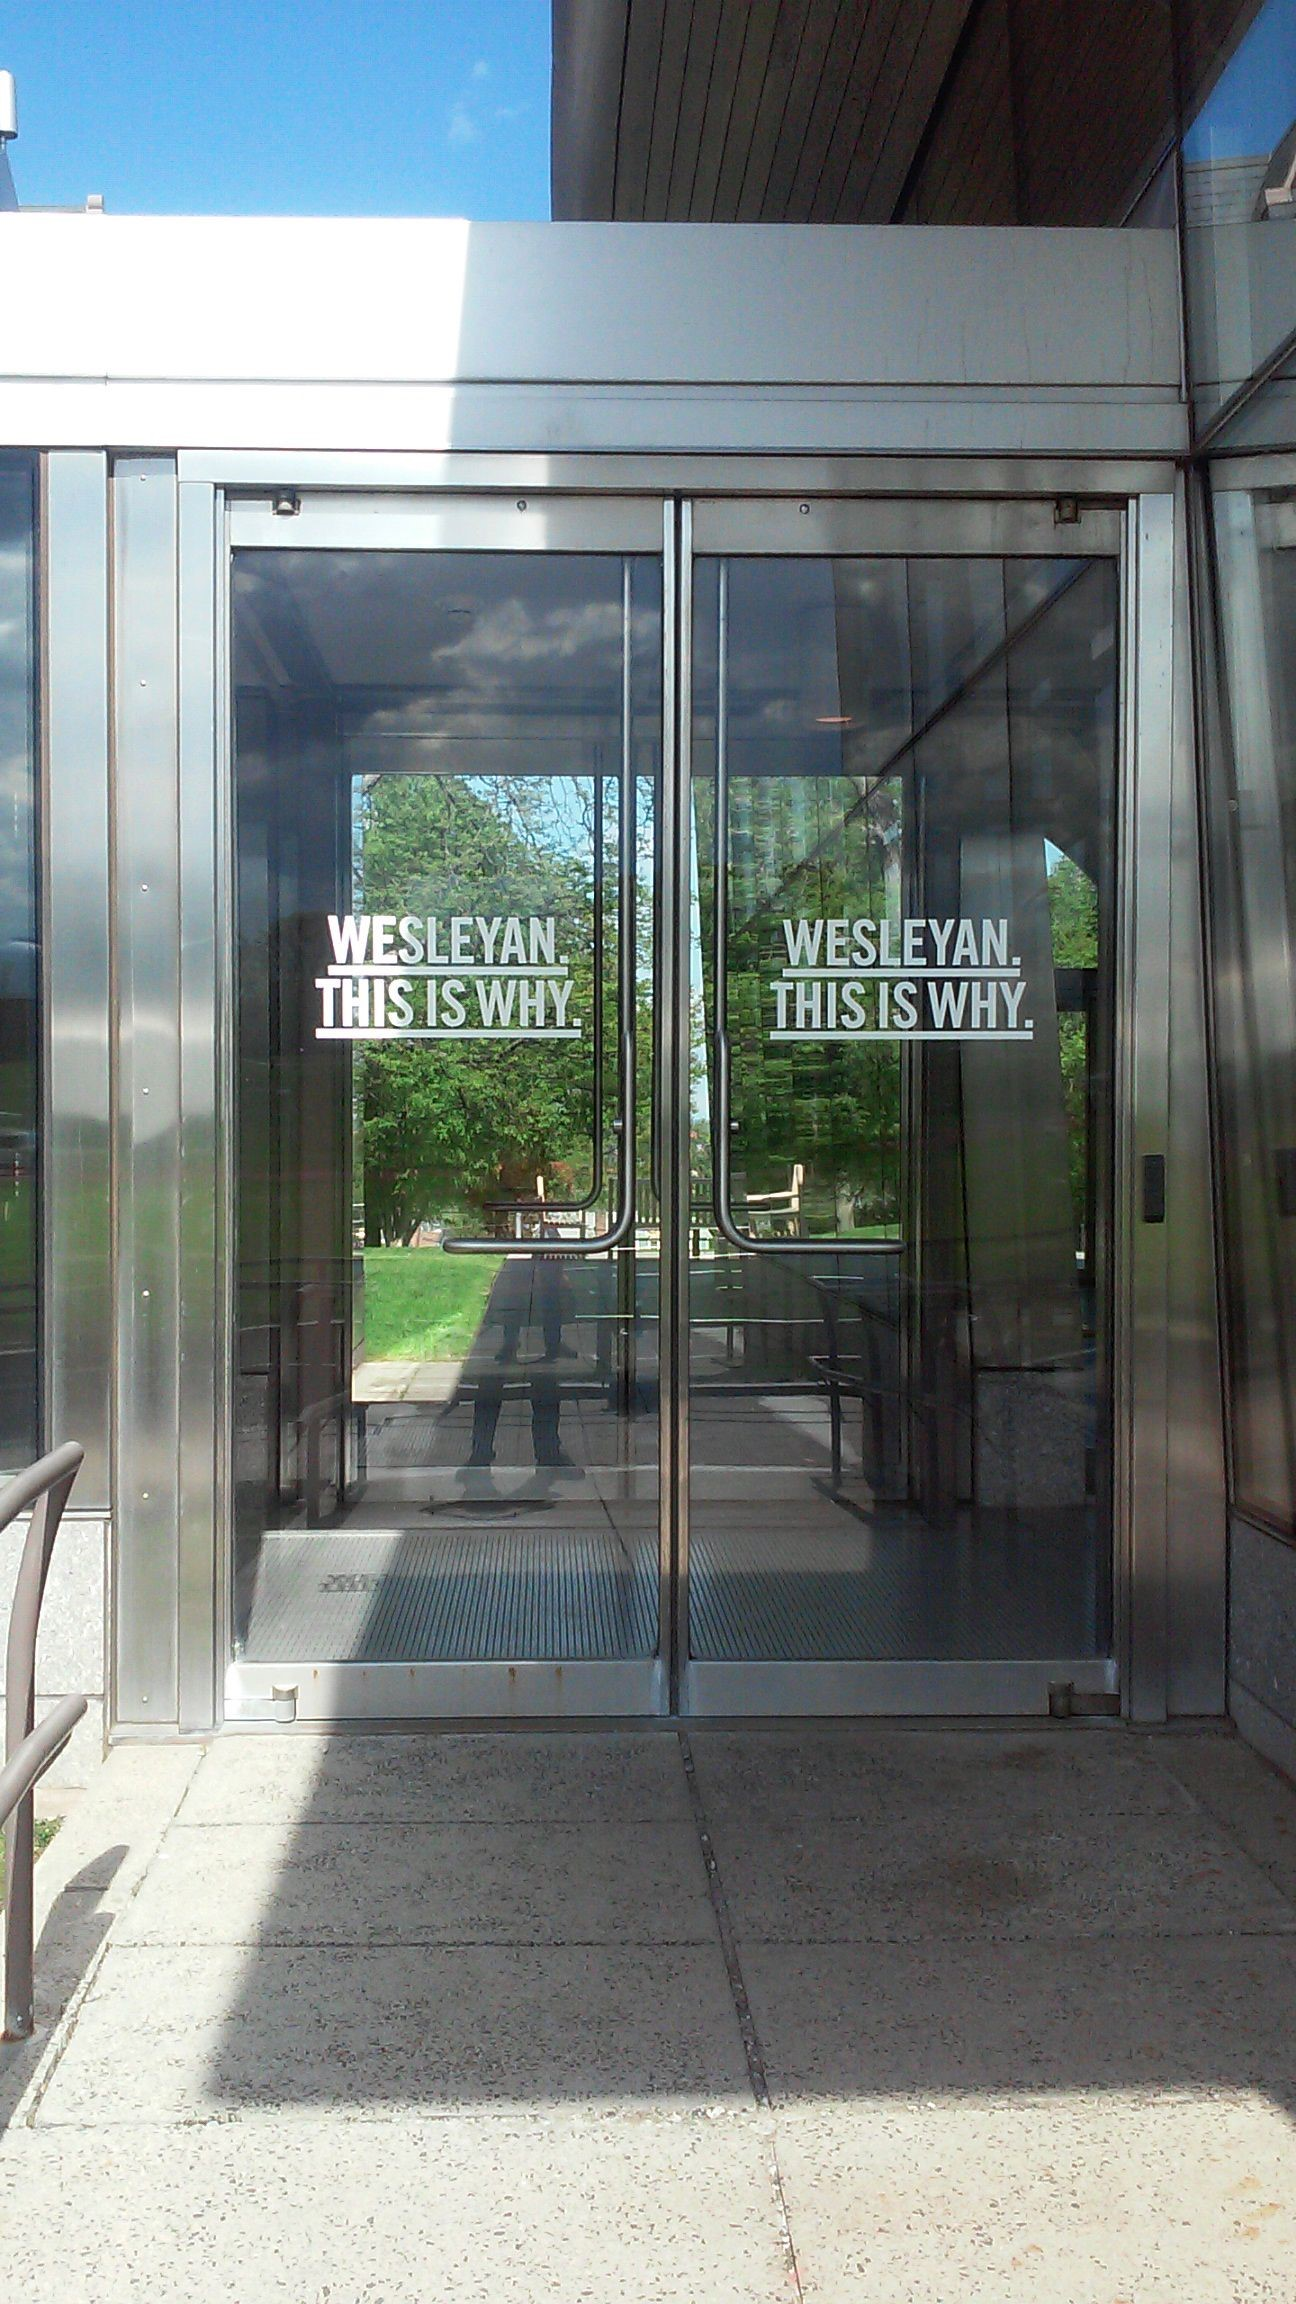 Window Graphics for Wesleyan in Middletown, CT